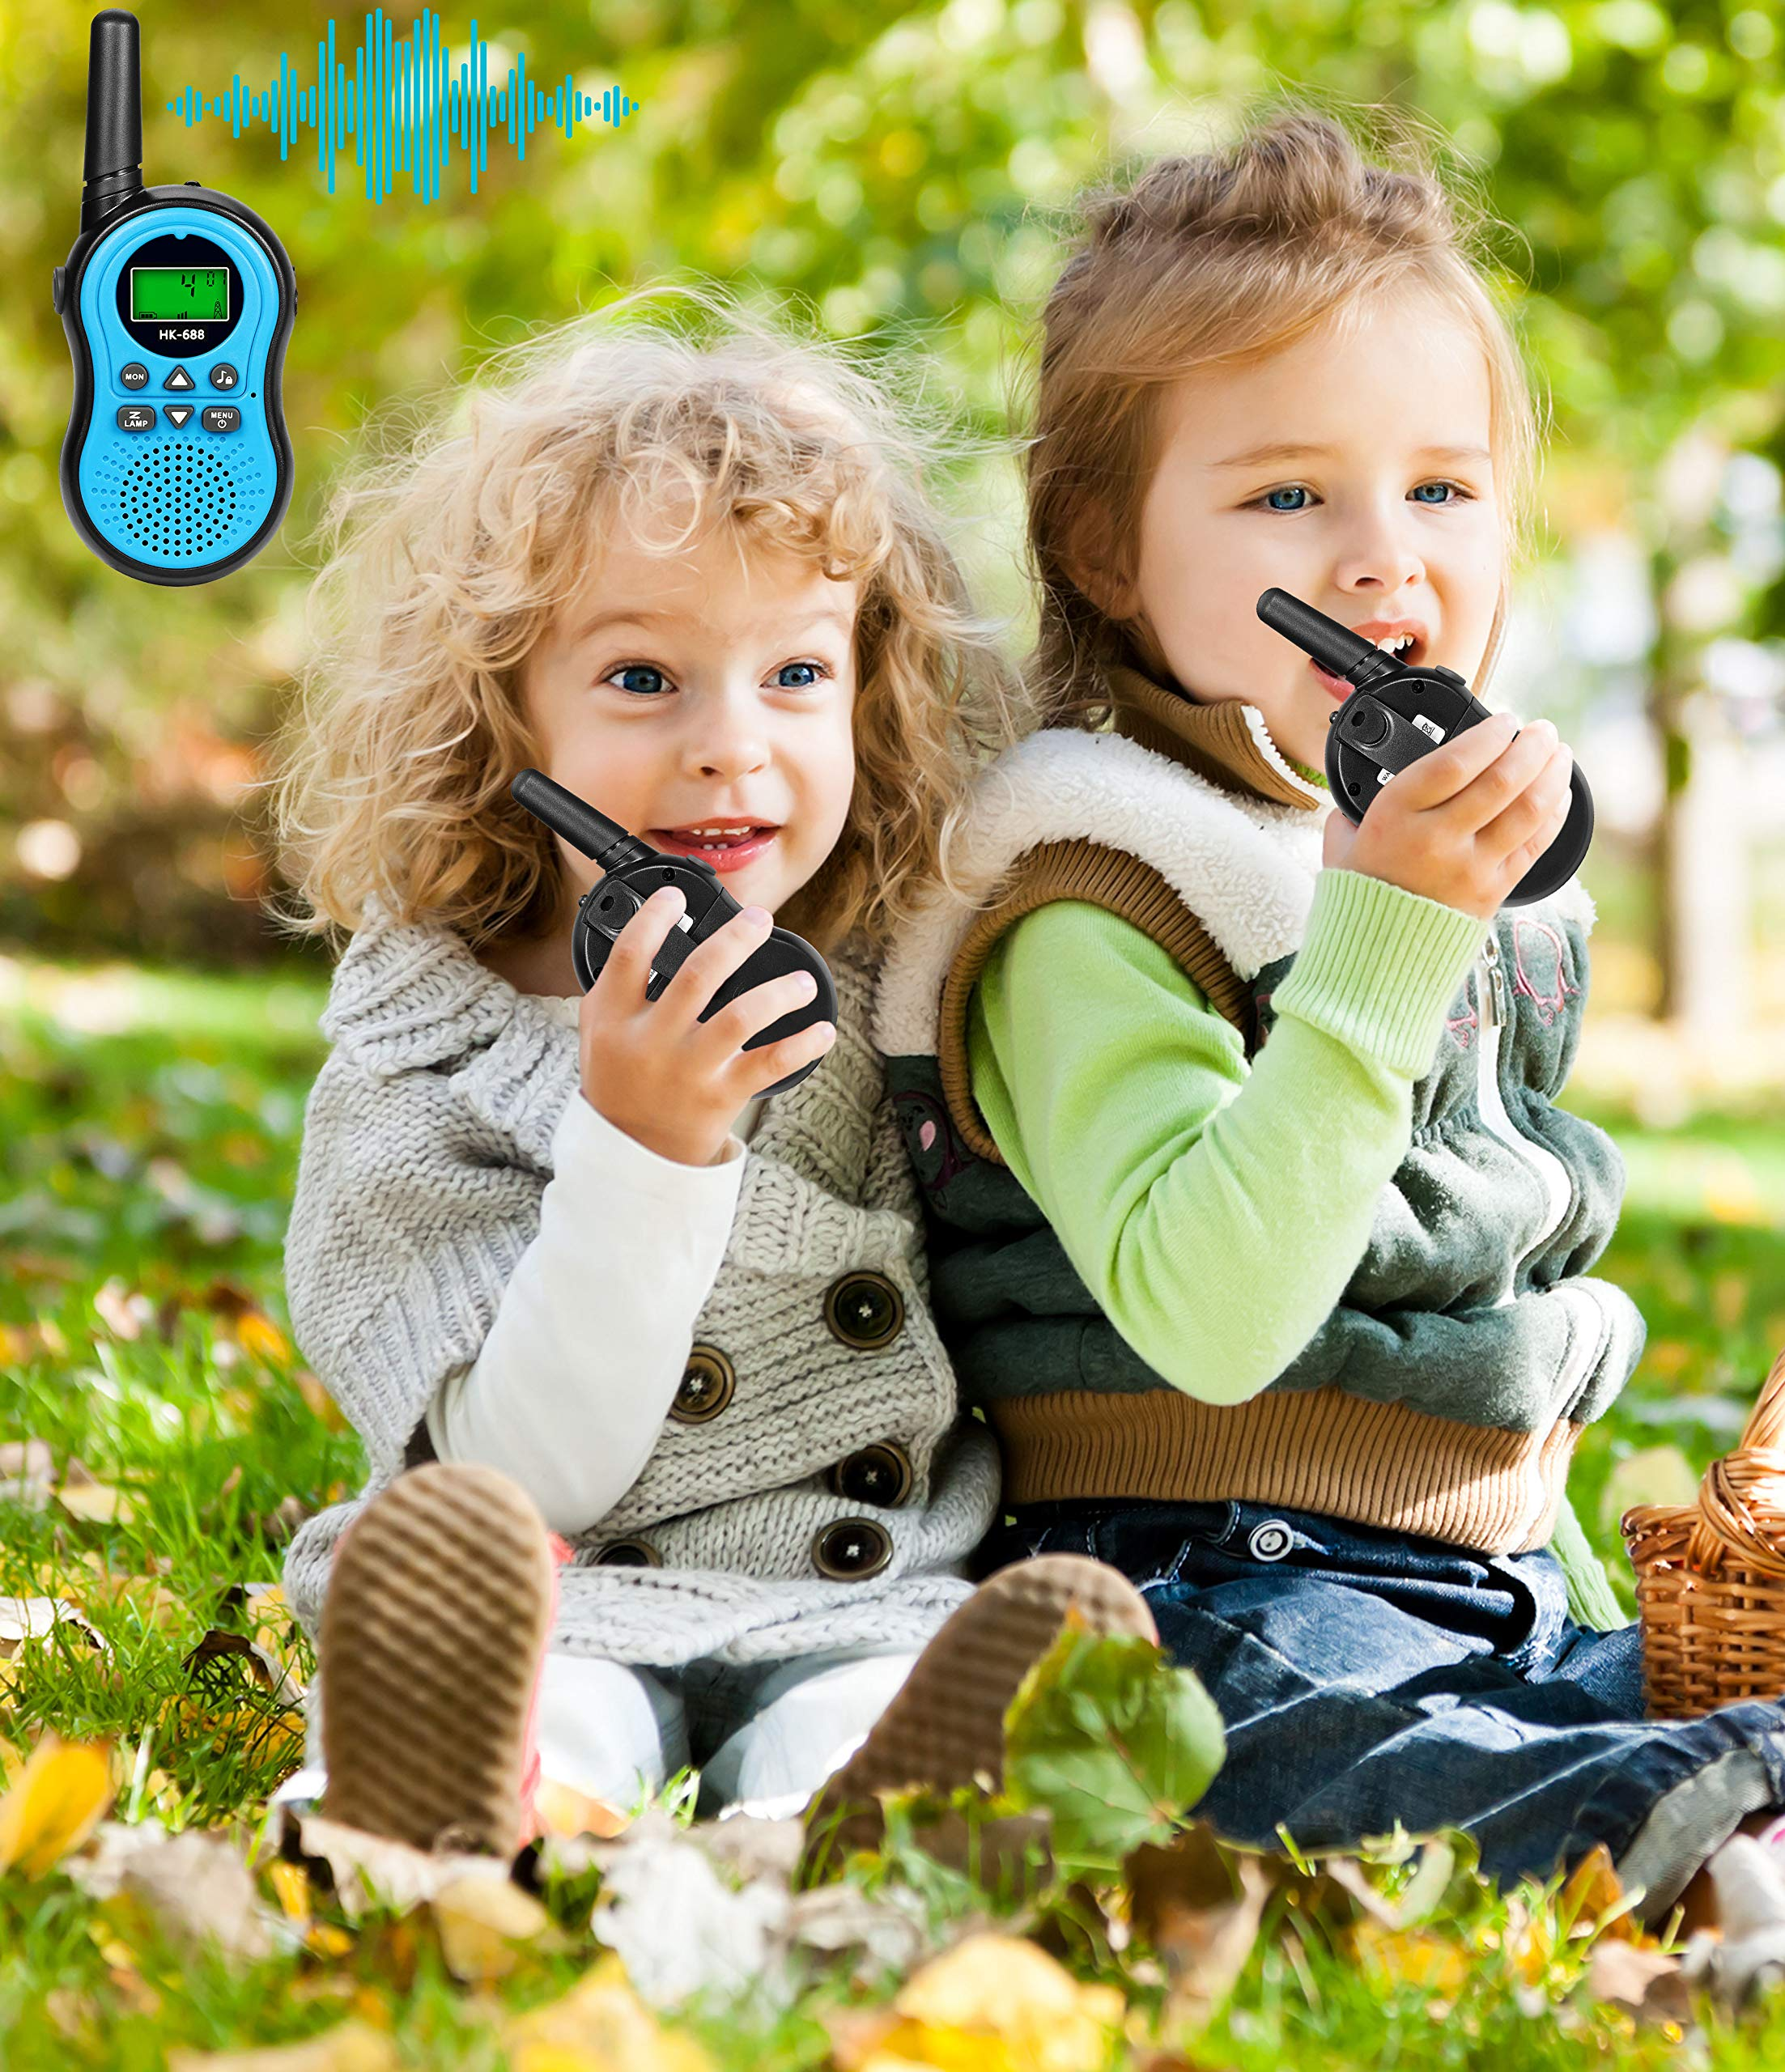 Kids Toys for 3-15 Year Old Boy,Fun Gifts for Teen Girls Boys,XIYITOY Walkie Talkies for Children Teen Boy Gifts Birthday Presents,Boys Gift Age 5,HK-688 1Pair(Blue) by XIYITOY (Image #5)